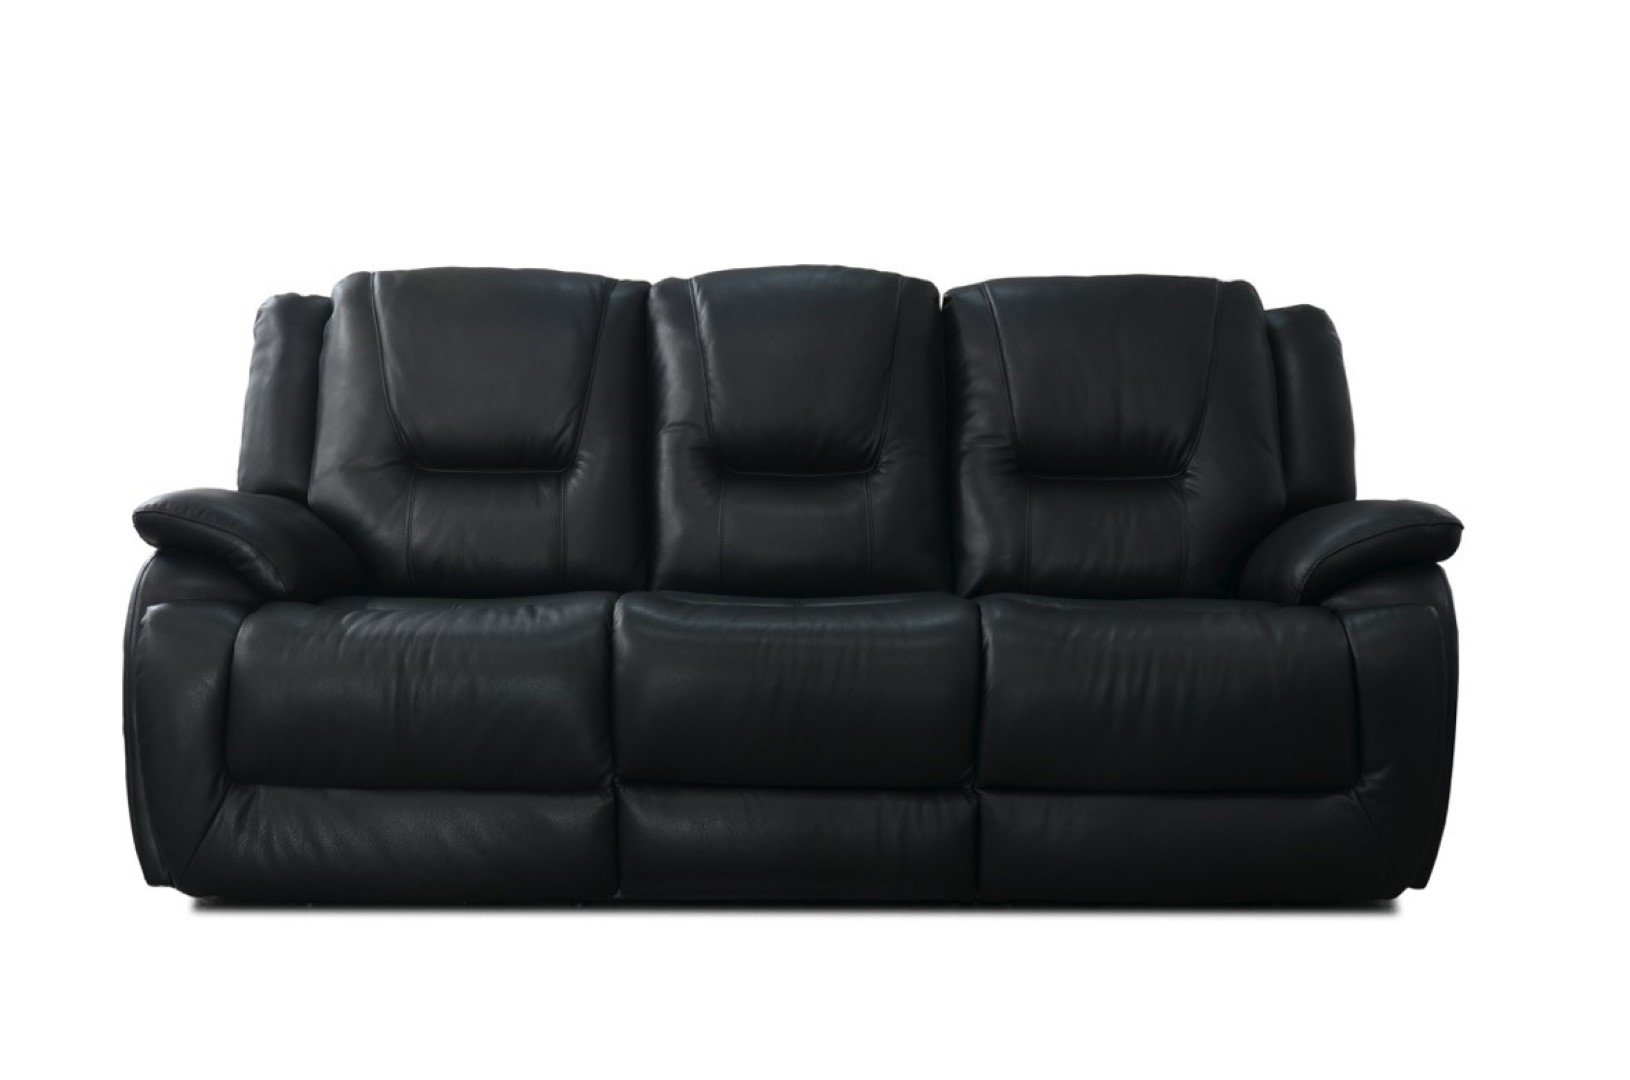 Pleasing Balmoral 3 Seater Sofa In Leather Interior Design Ideas Clesiryabchikinfo